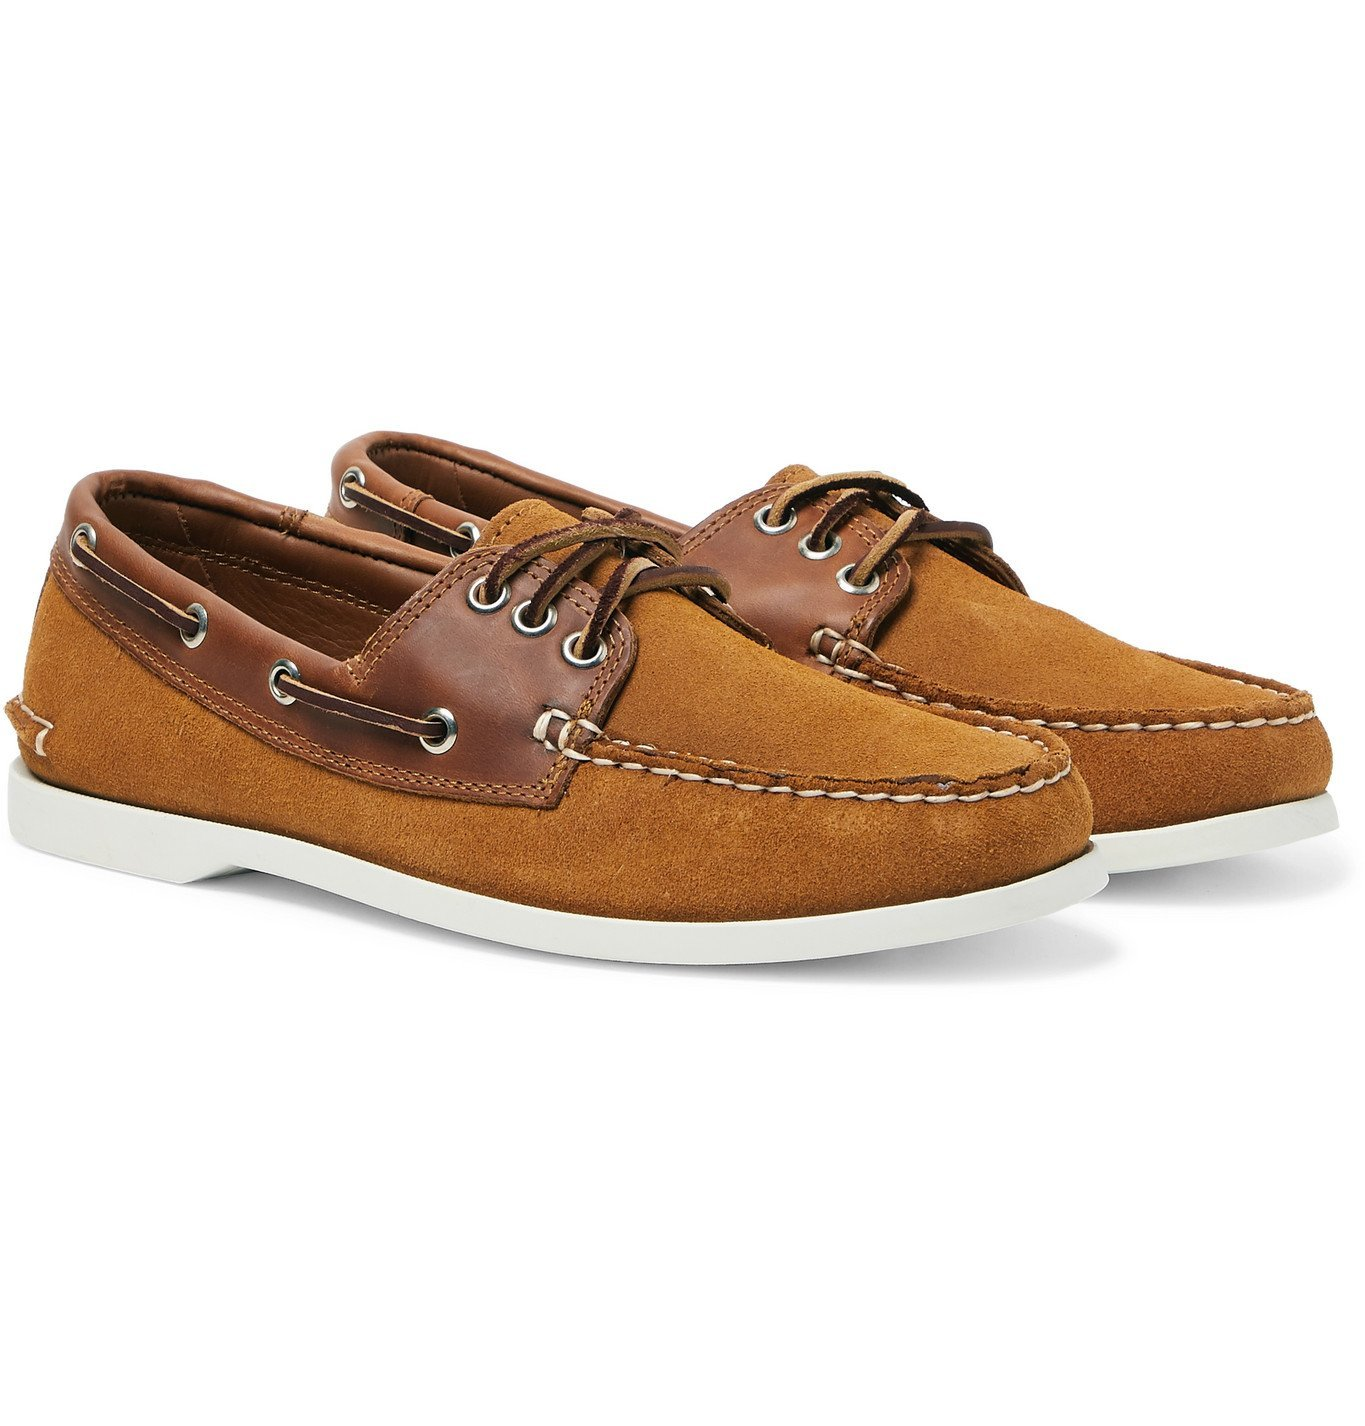 Photo: Quoddy - Downeast Suede and Leather Boat Shoes - Brown